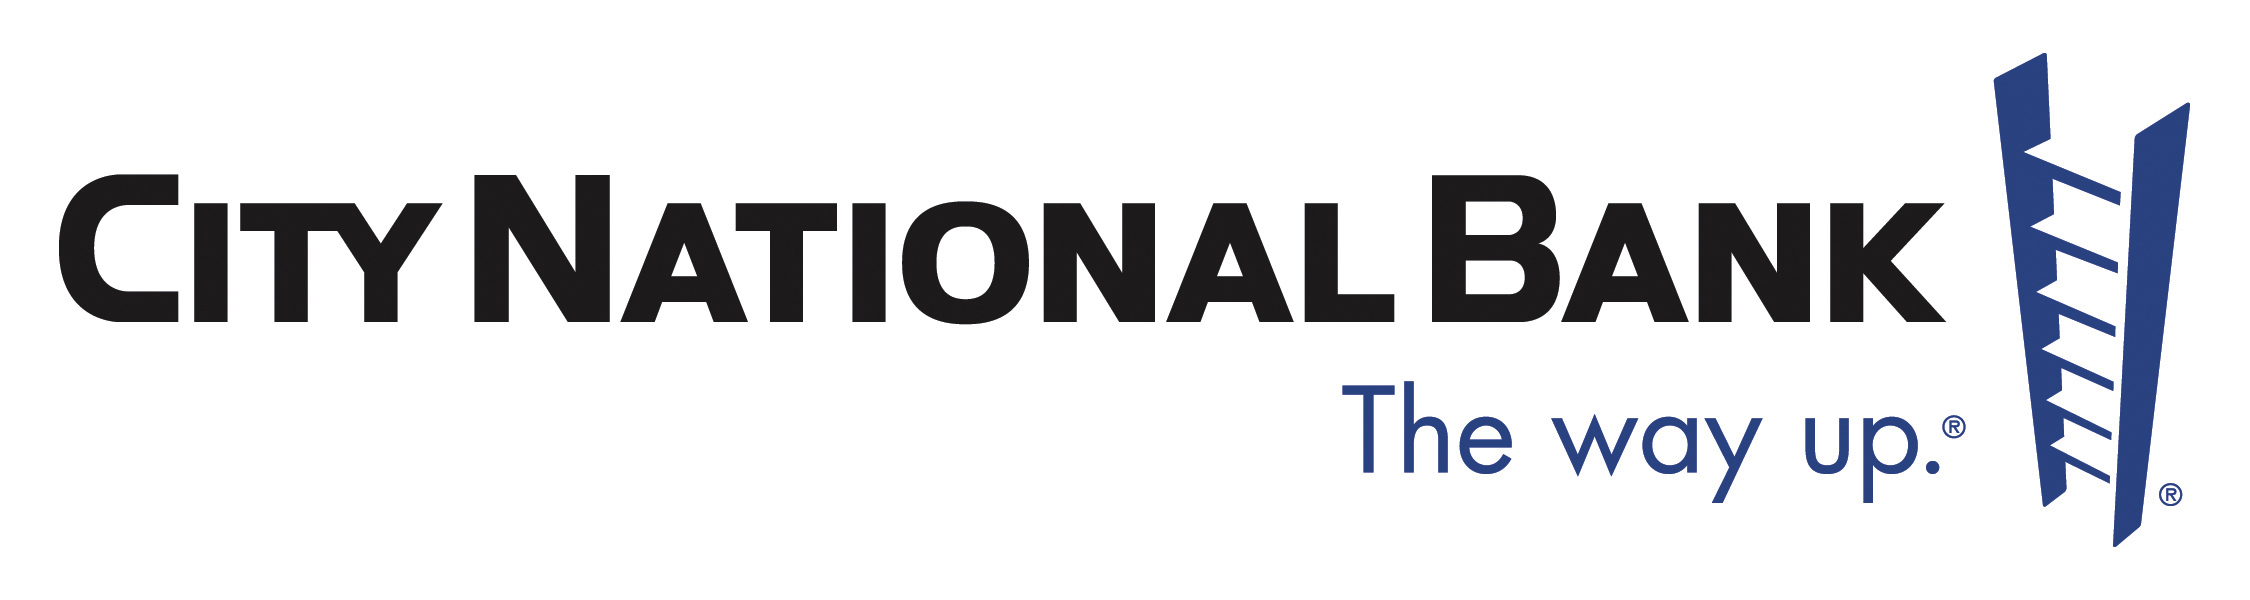 City National Corp. logo